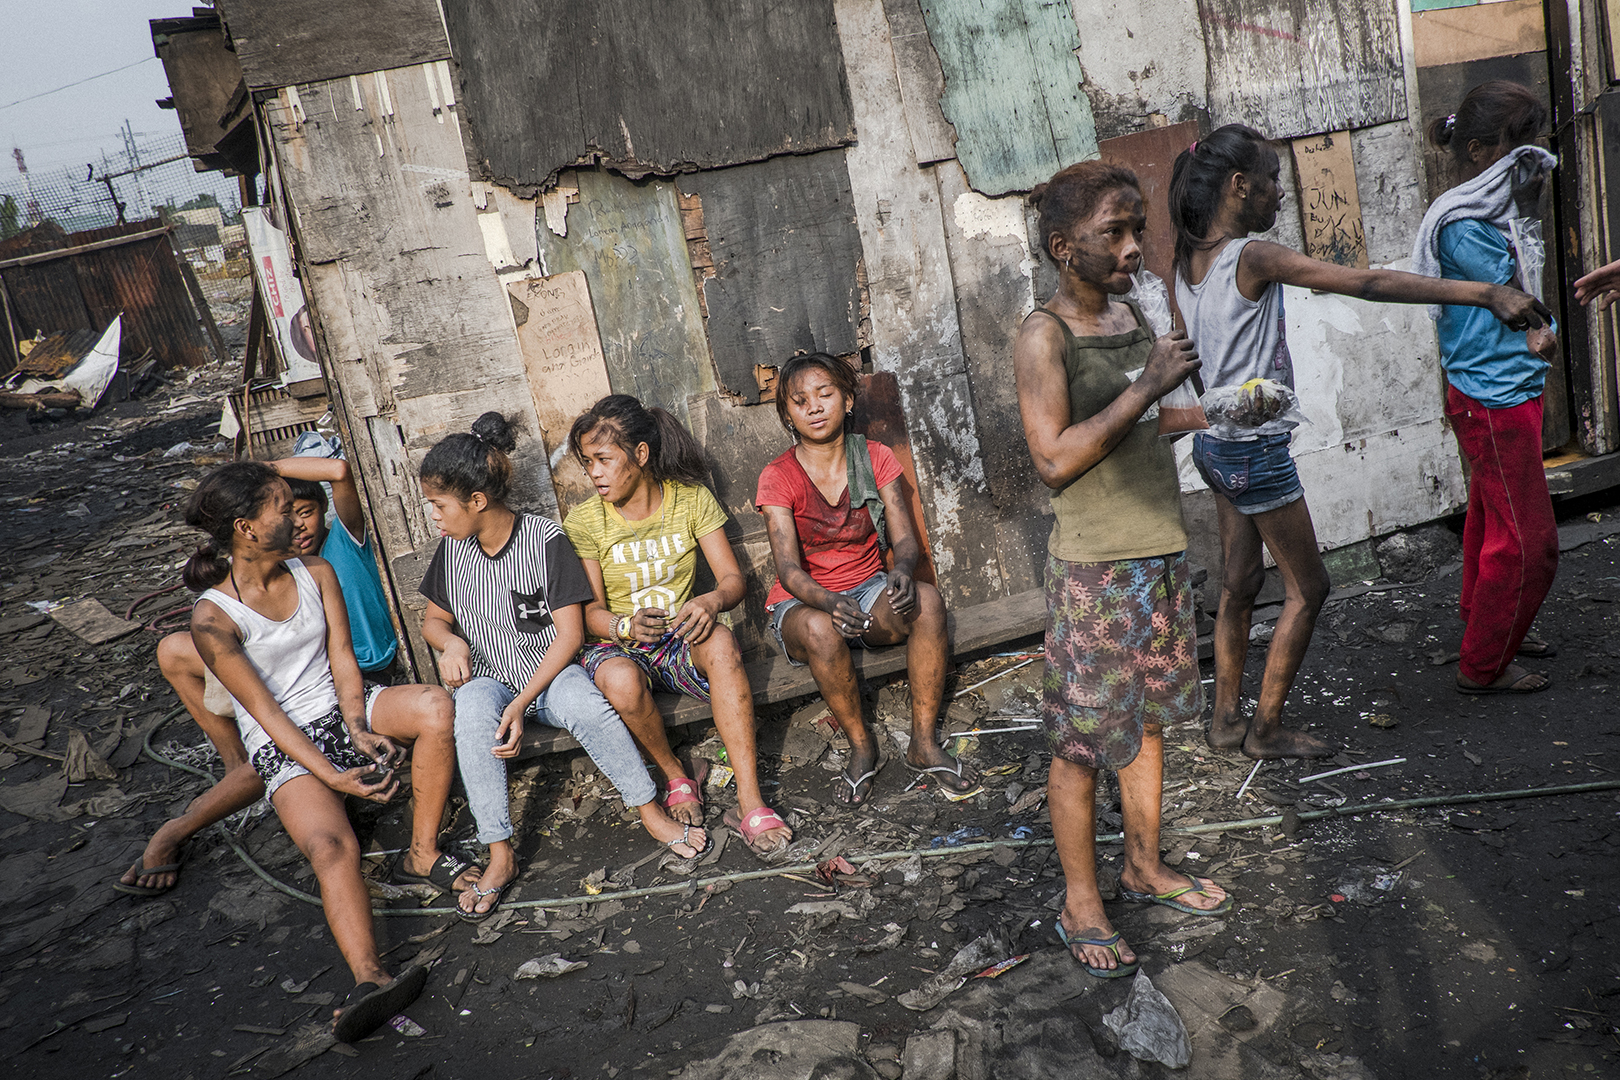 Girls taking rest after a long day of work, while boys are packing bags full of charcoal on the tricycles. They will later transport it to the local market where charcoal is being sold. Malabon, Philippines, 2017